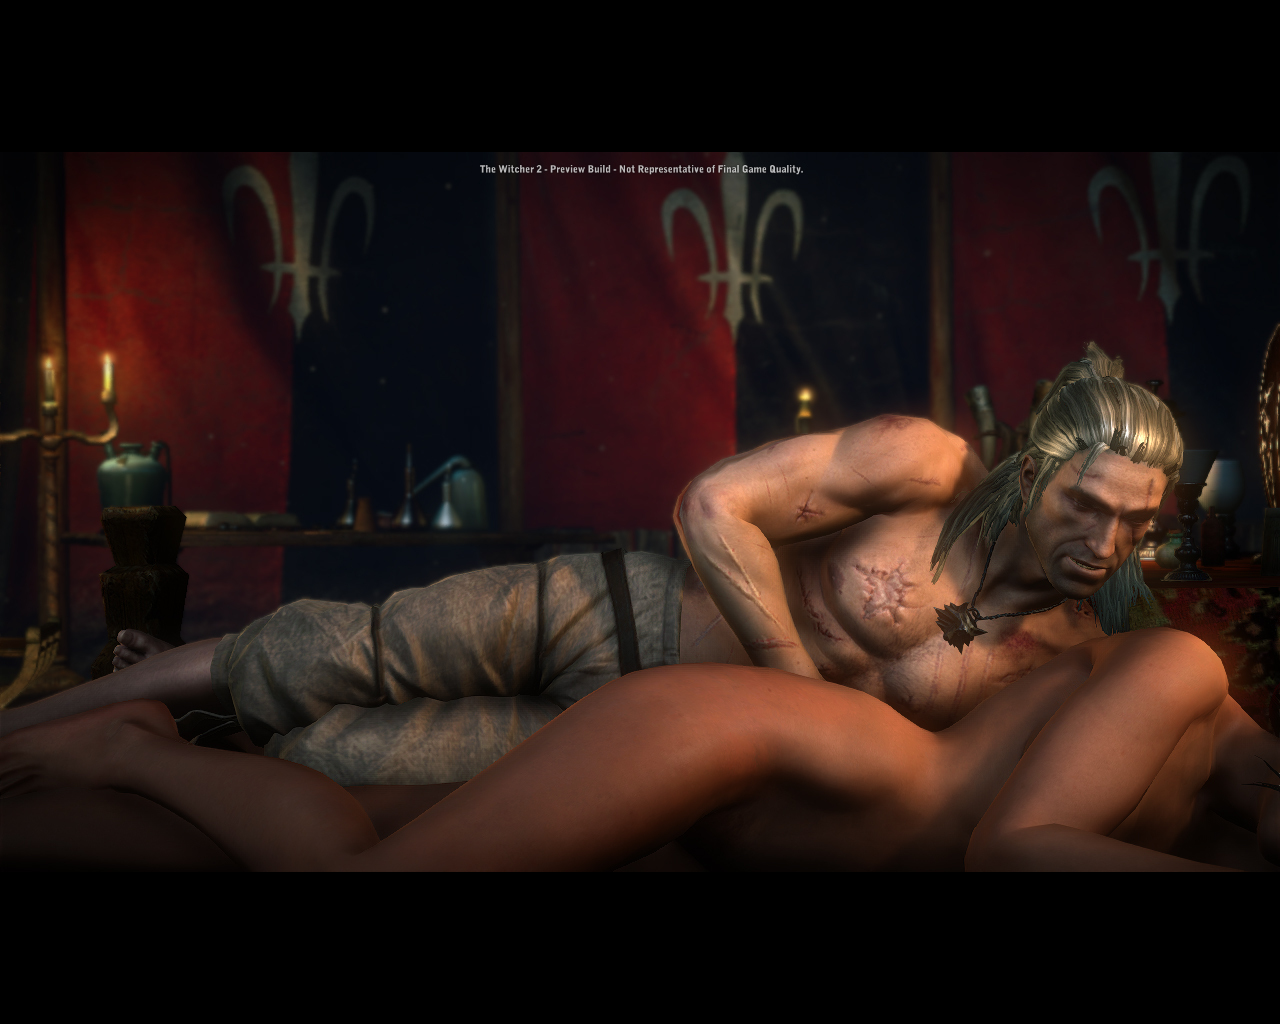 Sex card uncensored the witcher 3 erotic download